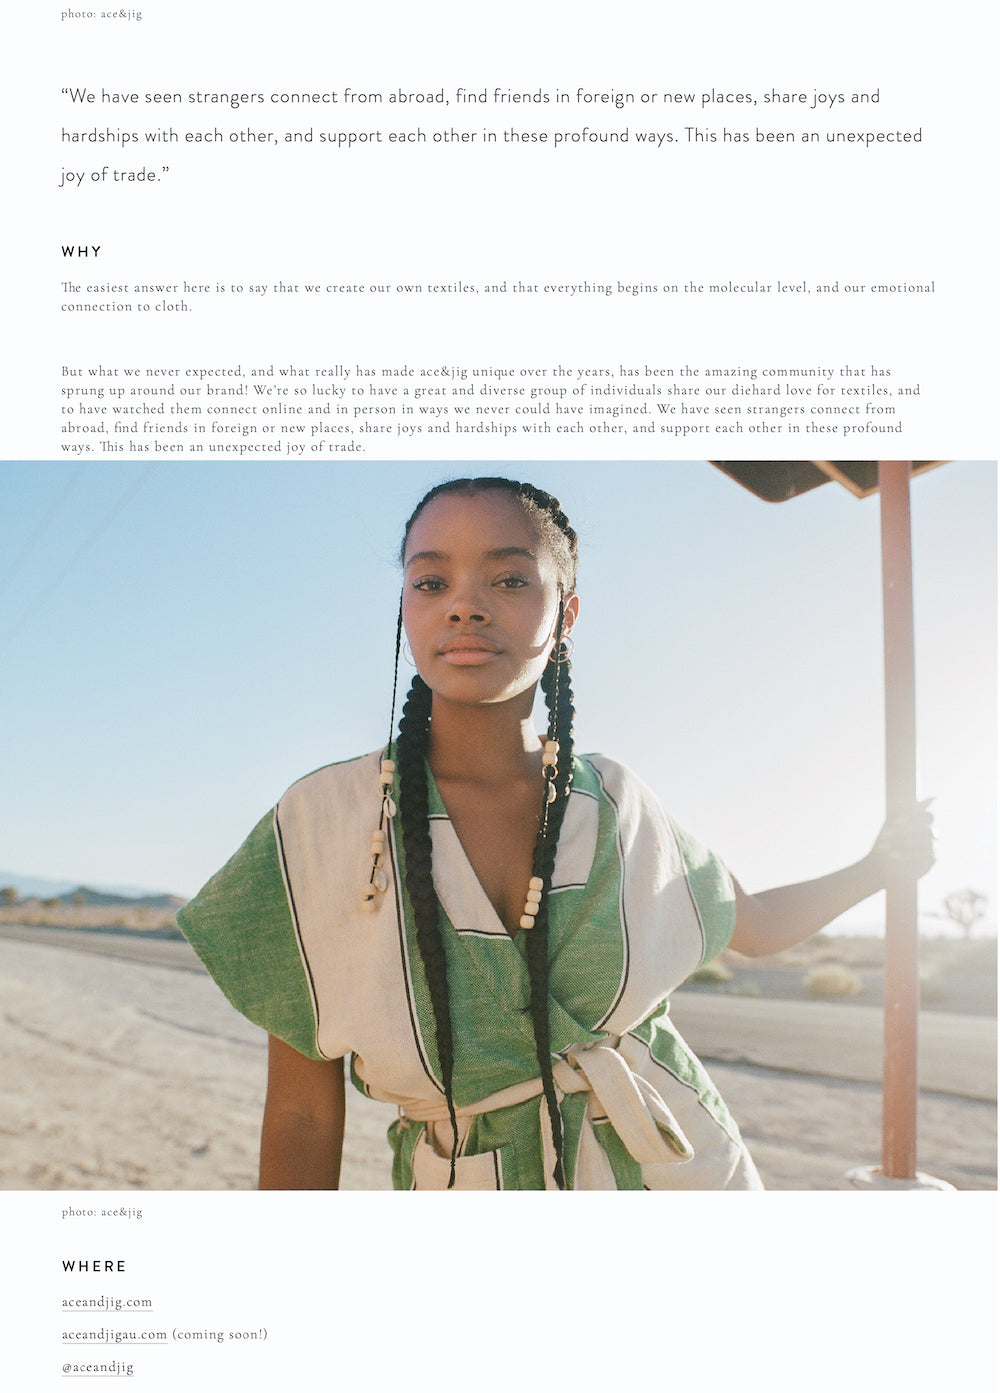 ace&jig featured in seek minimal, april 2019